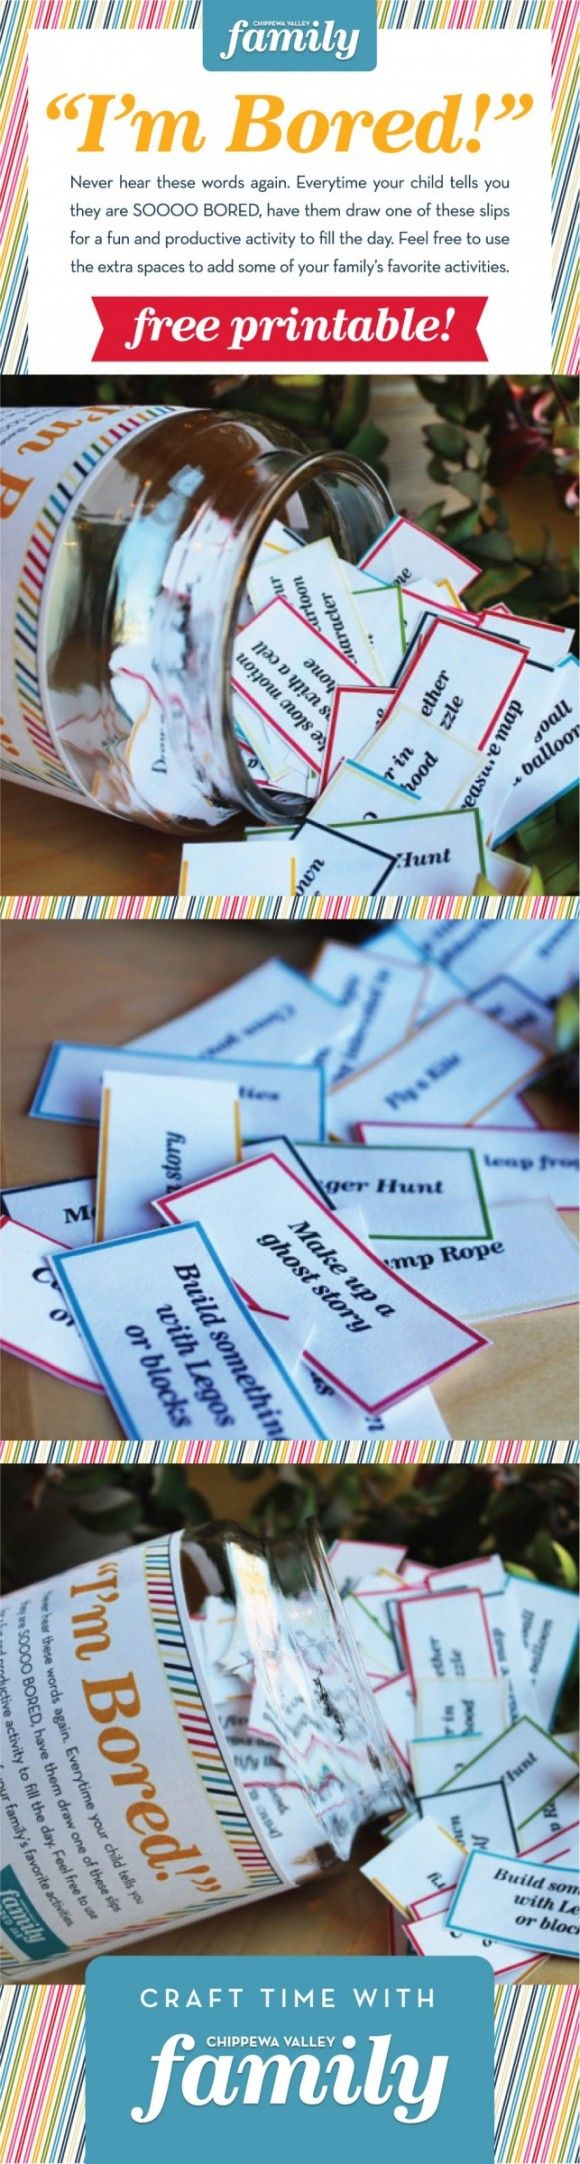 Summer Bored Jar keeps kids busy, and moms happy! FREE PRINTABLE to make your own. Super easy DIY project.